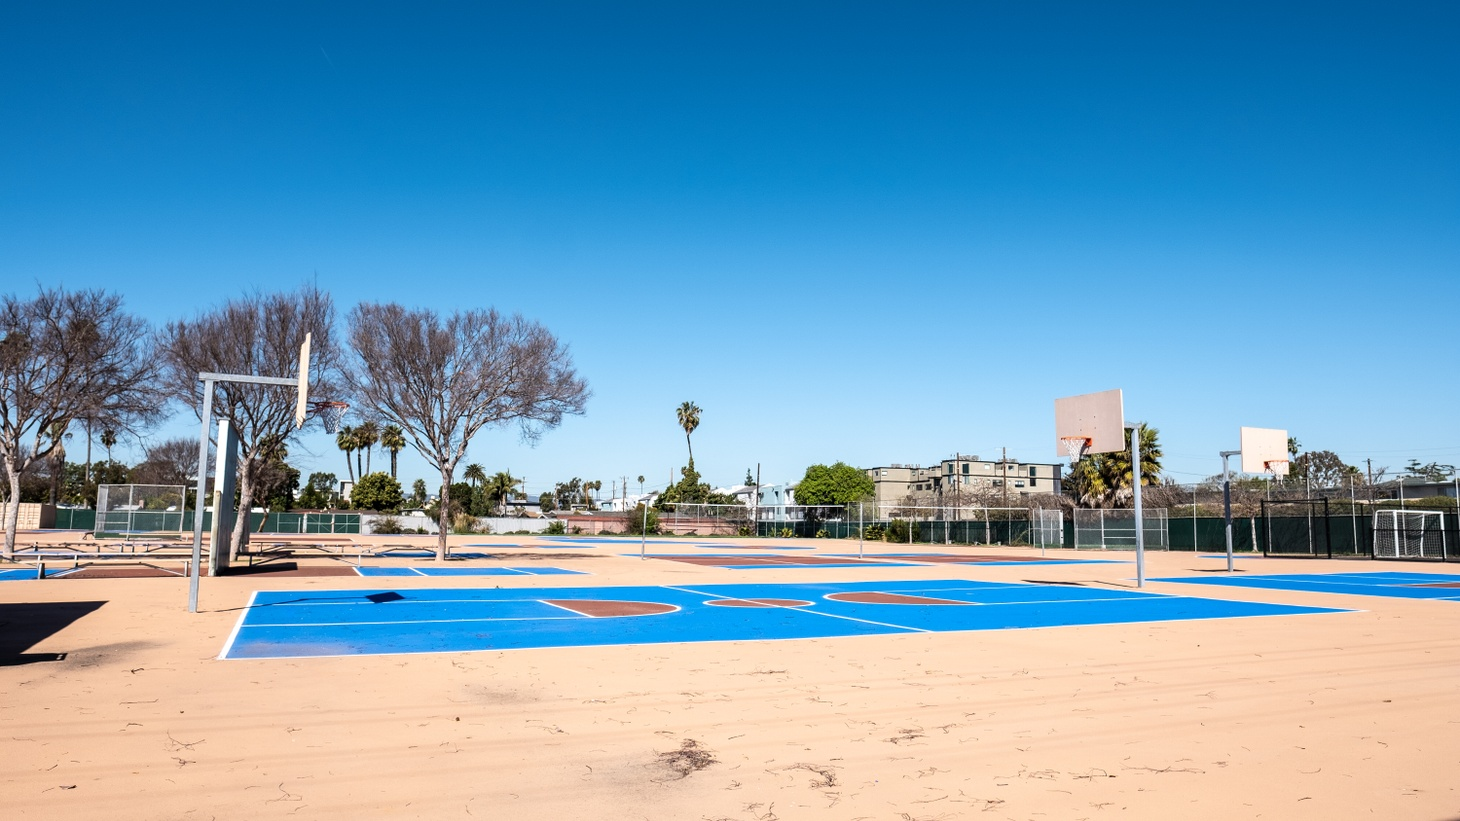 One LAUSD elementary school playground in Culver City remains empty as students continue learning at home during the pandemic, March 1, 2021. However, on March 11, 2021, the LAUSD board voted unanimously on a tentative deal with the teachers union to reopen schools in April.